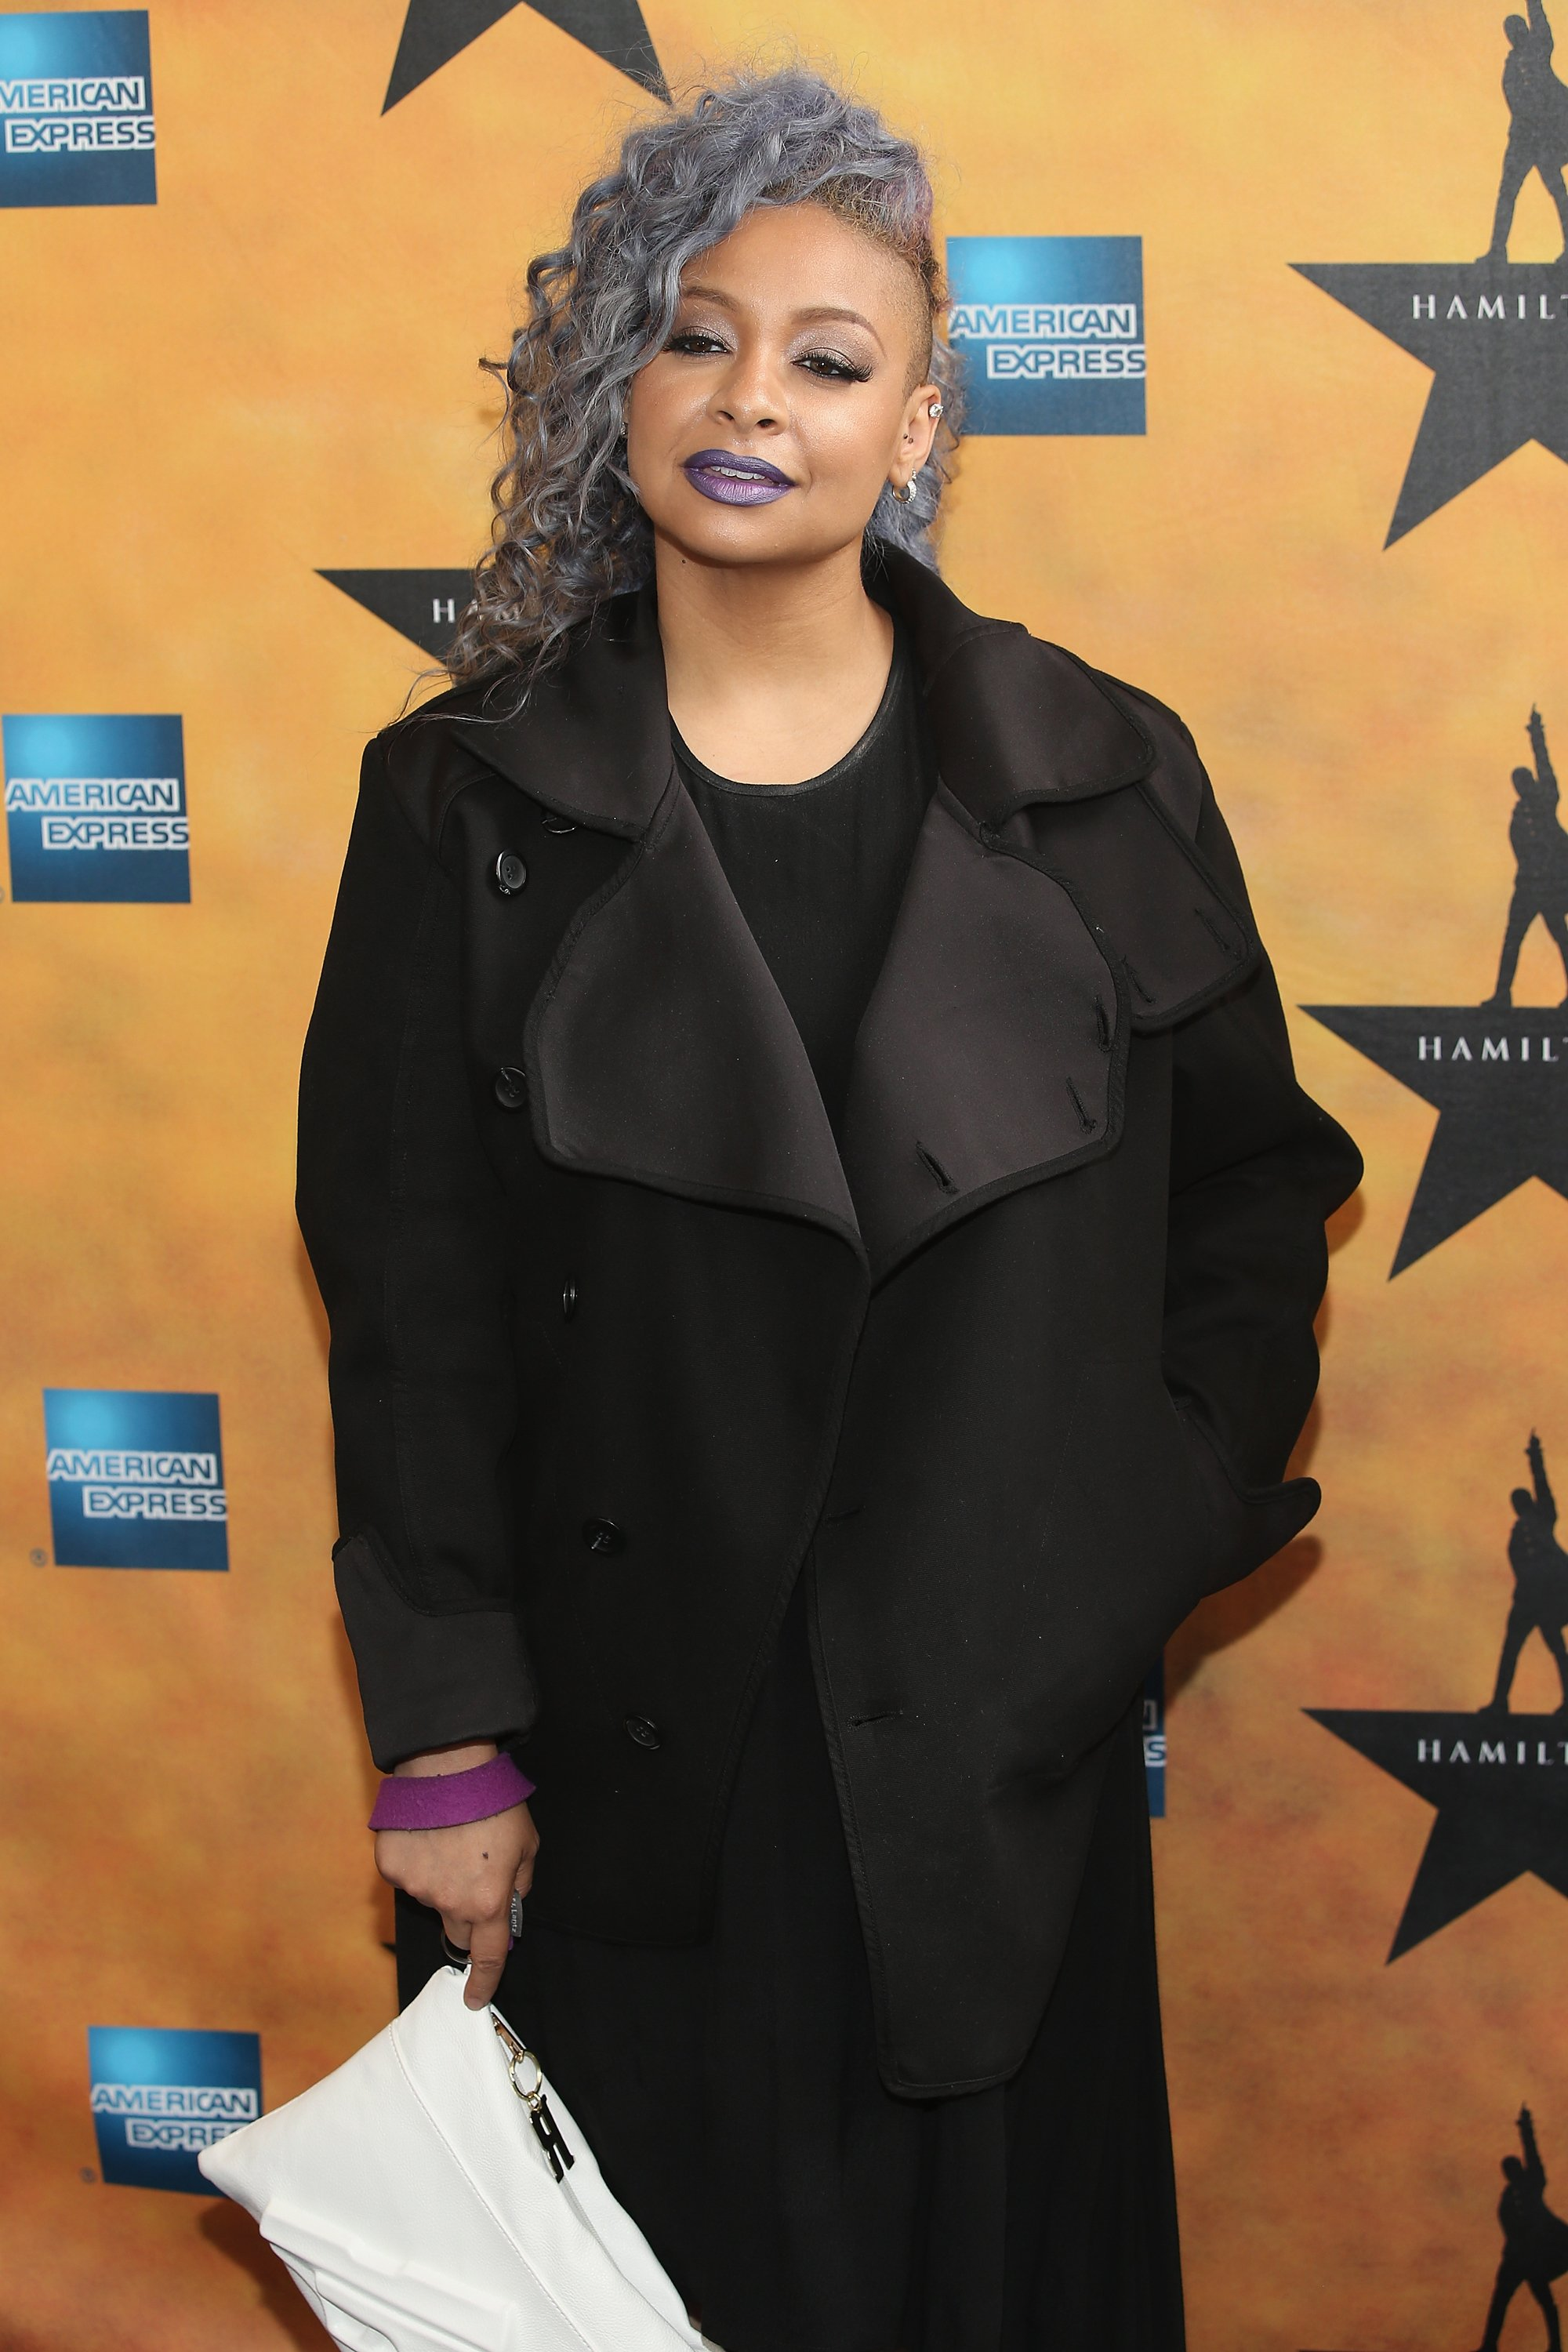 """Orlando Brown's """"That's So Raven"""" co-star Raven Symone previously denied his claims of a sexual relationship between them. Photo taken in August 2015. 